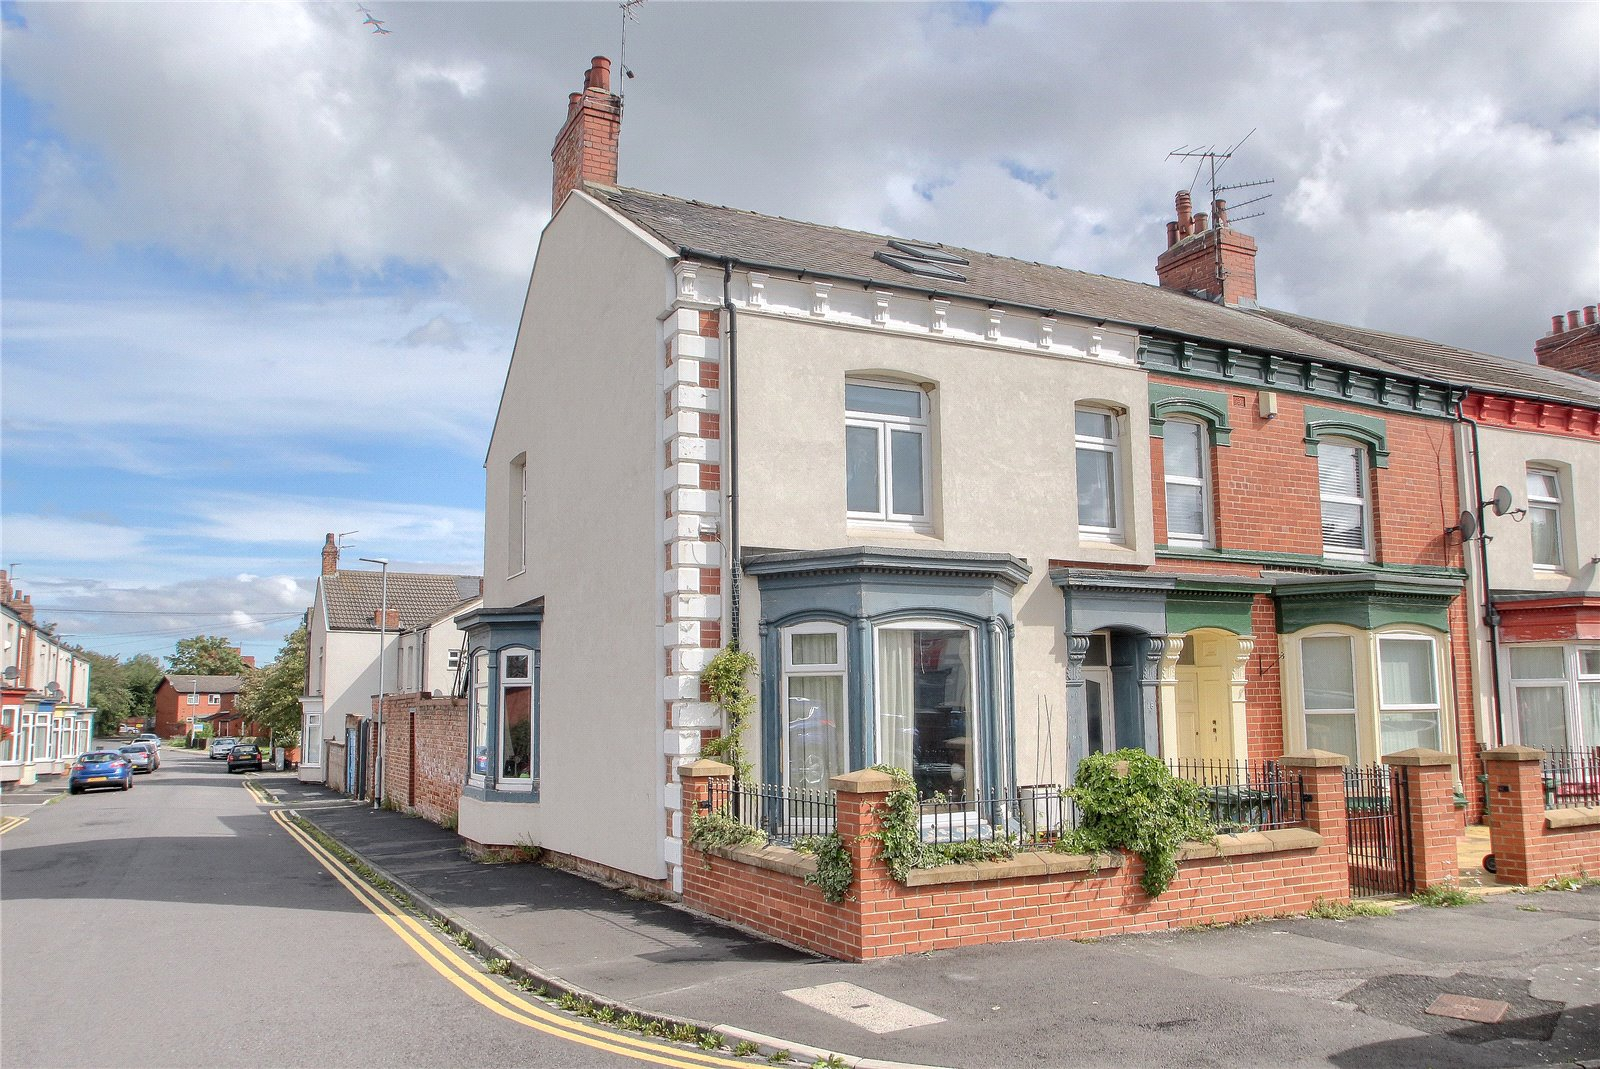 5 bed house for sale in Varo Terrace, Stockton-on-Tees - Property Image 1